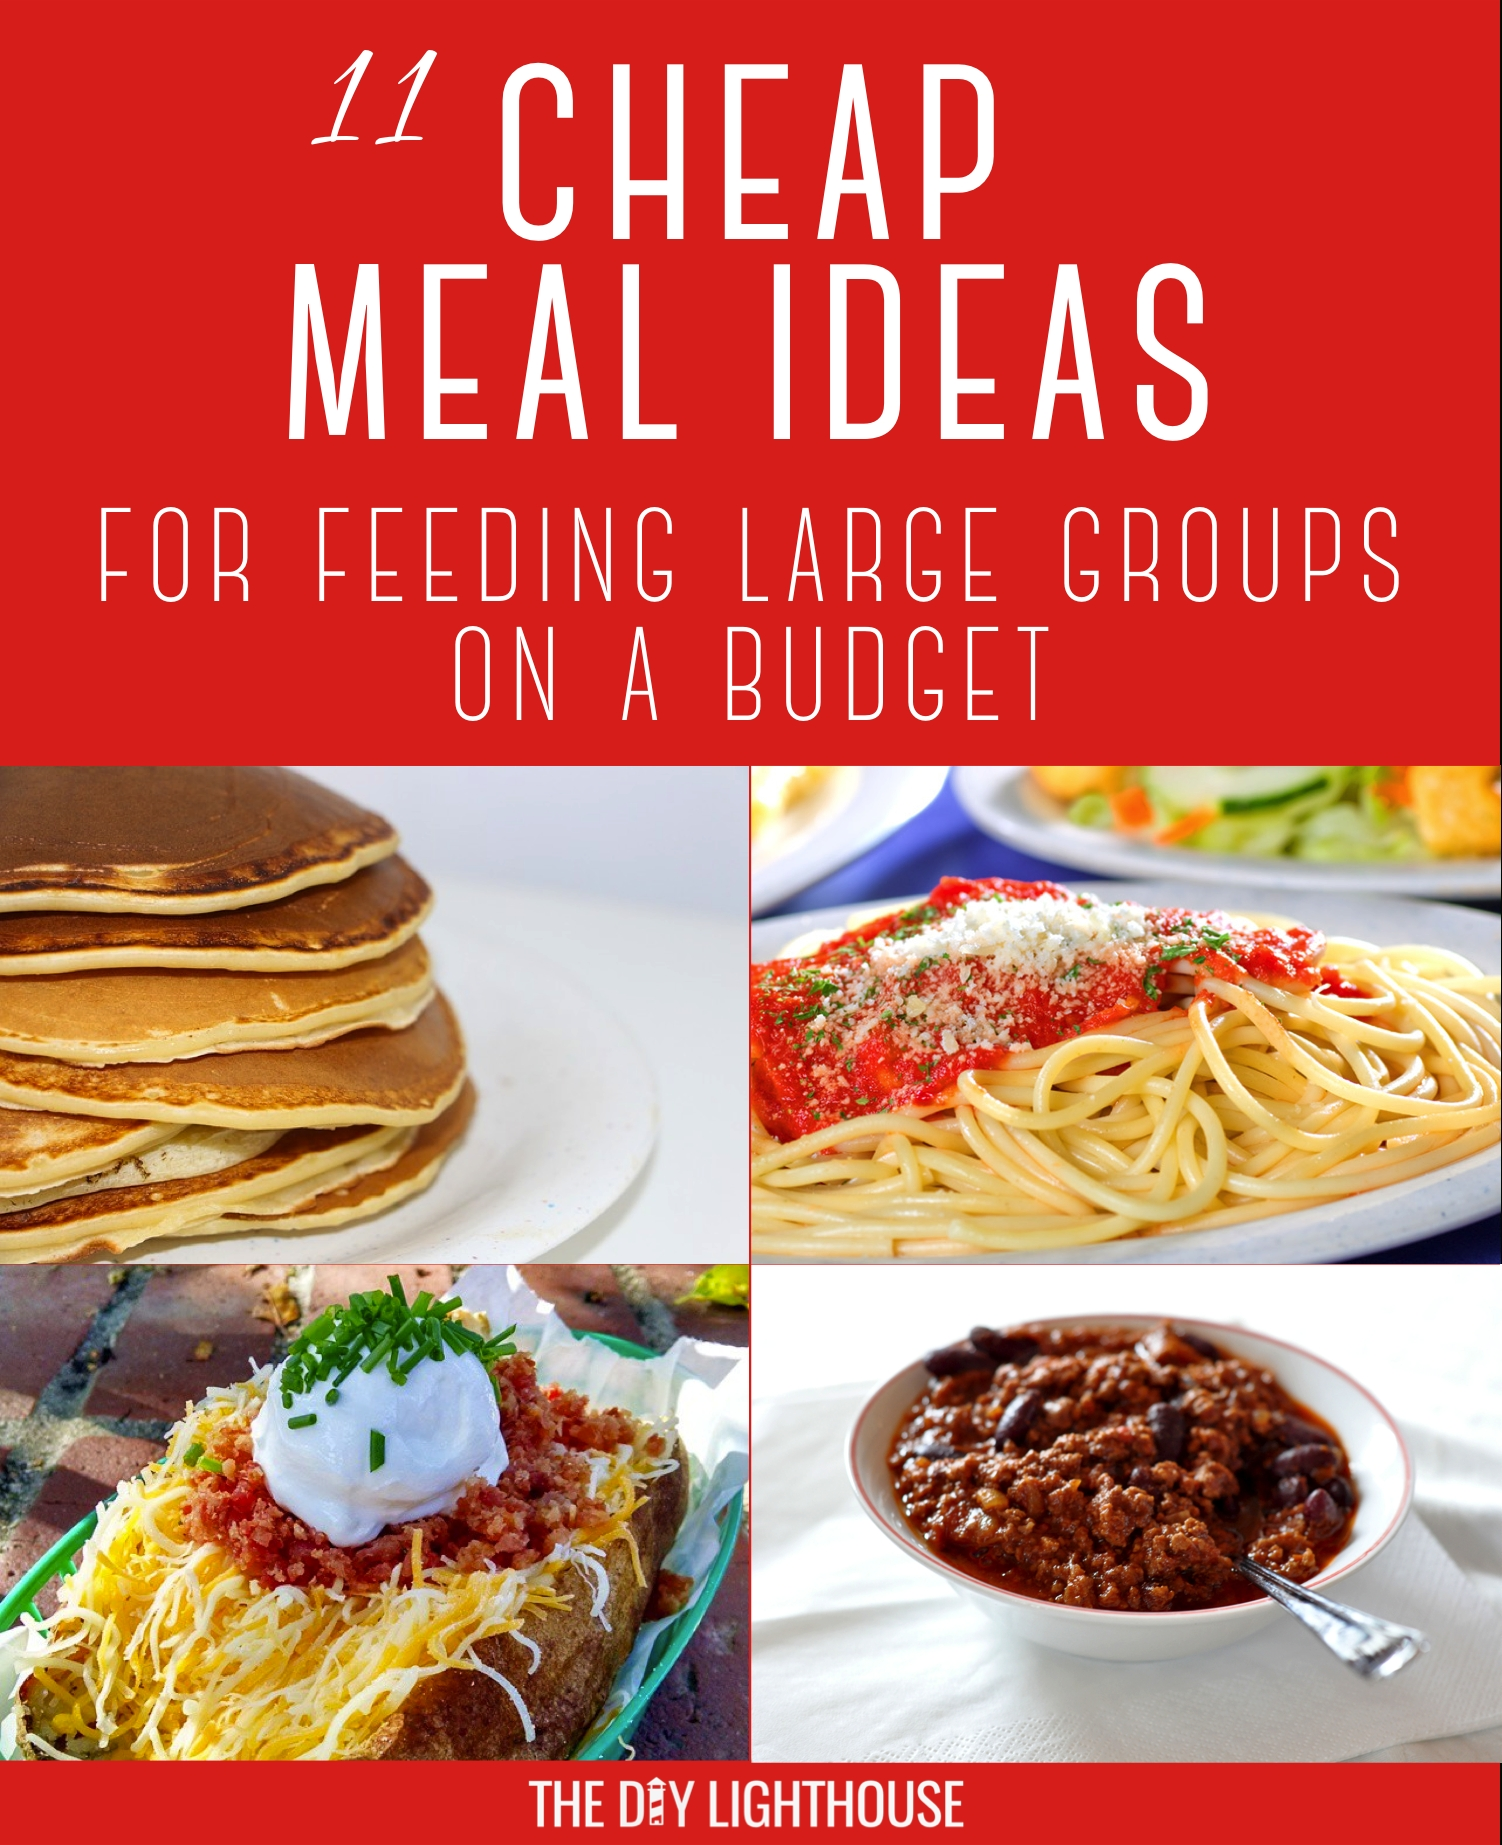 10 Fabulous Cheap Meal Ideas For Families cheap meals for feeding large groups 9 2021